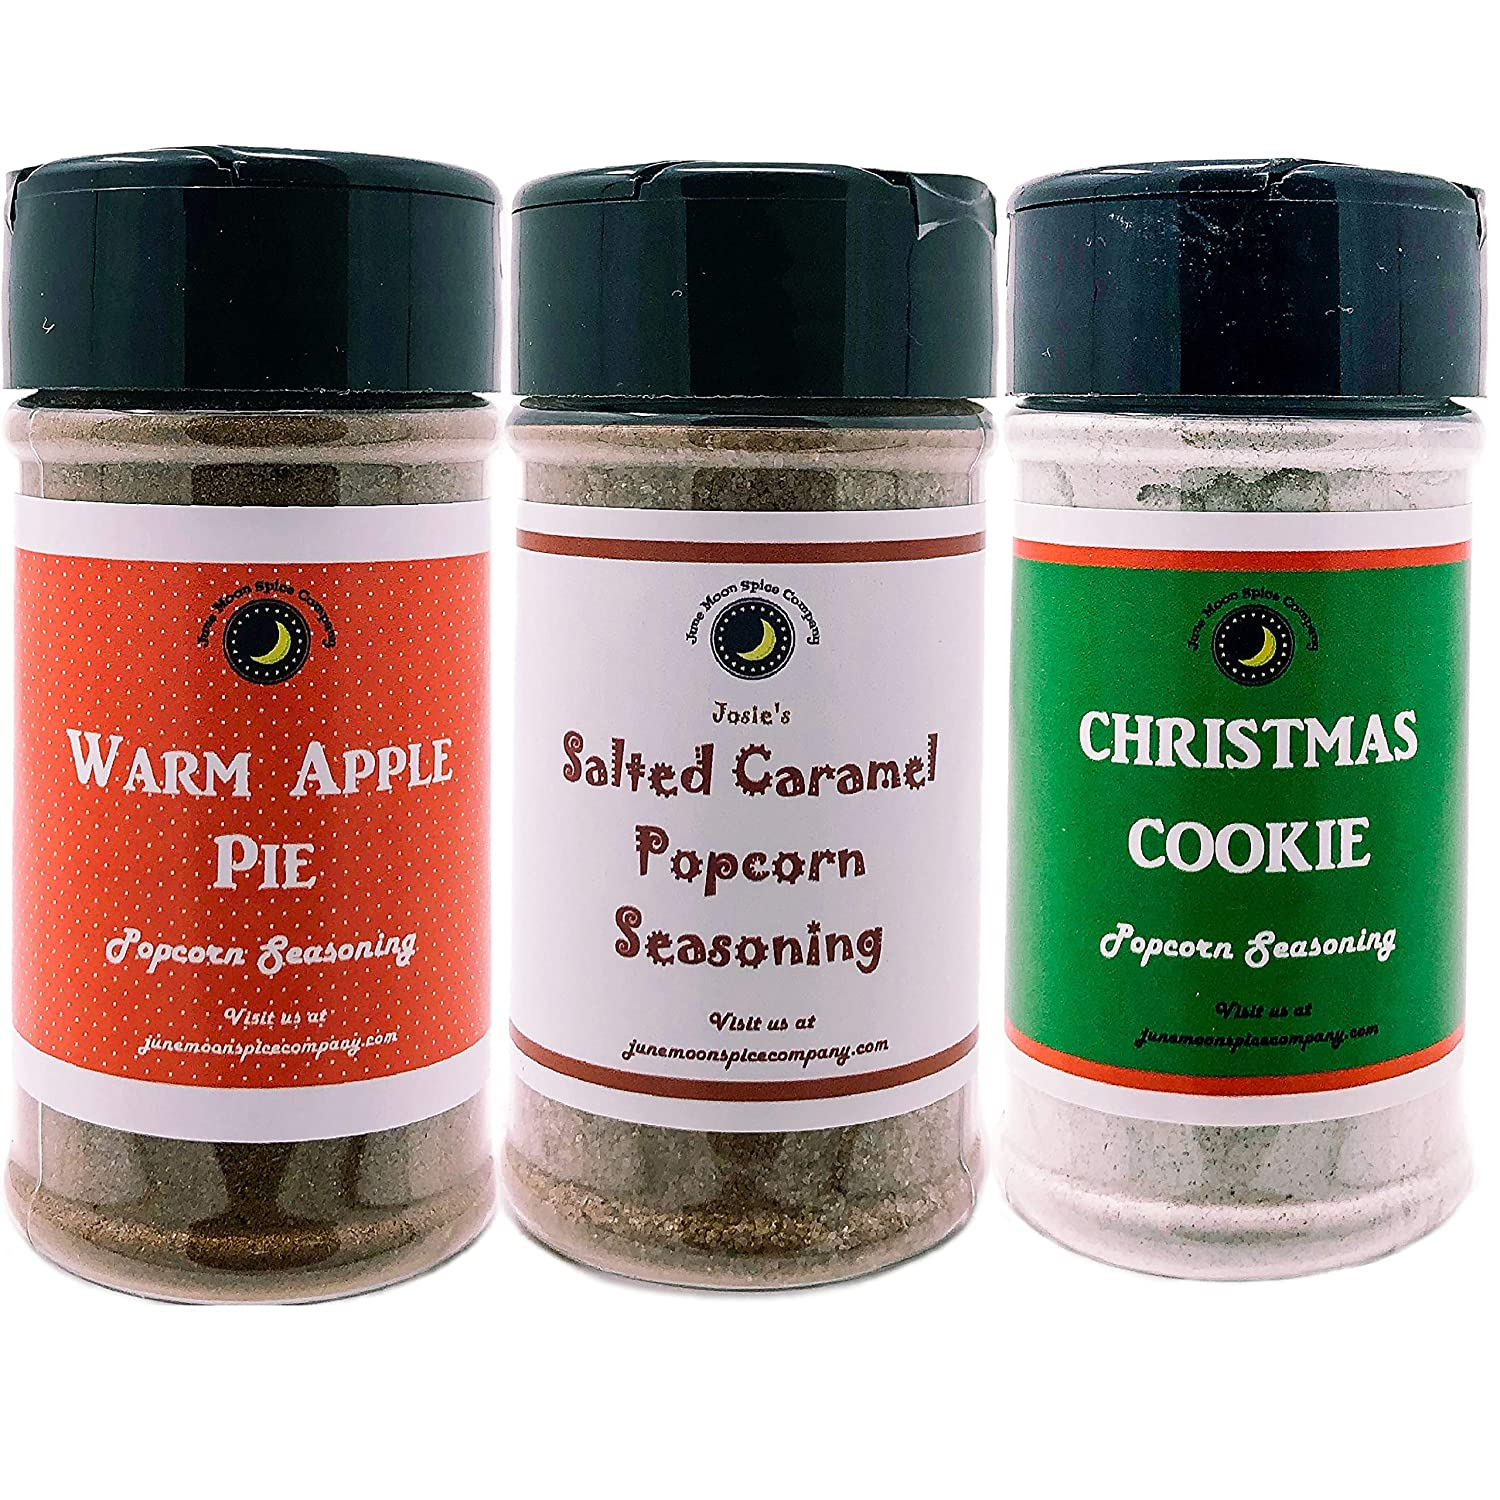 Premium | POPCORN SEASONING | Variety 3 Pack | Salted Caramel | Warm Apple Pie | Christmas Cookie | Crafted in Small Batches with Farm Fresh SPICES for Premium Flavor and Zest | 3.5 oz.